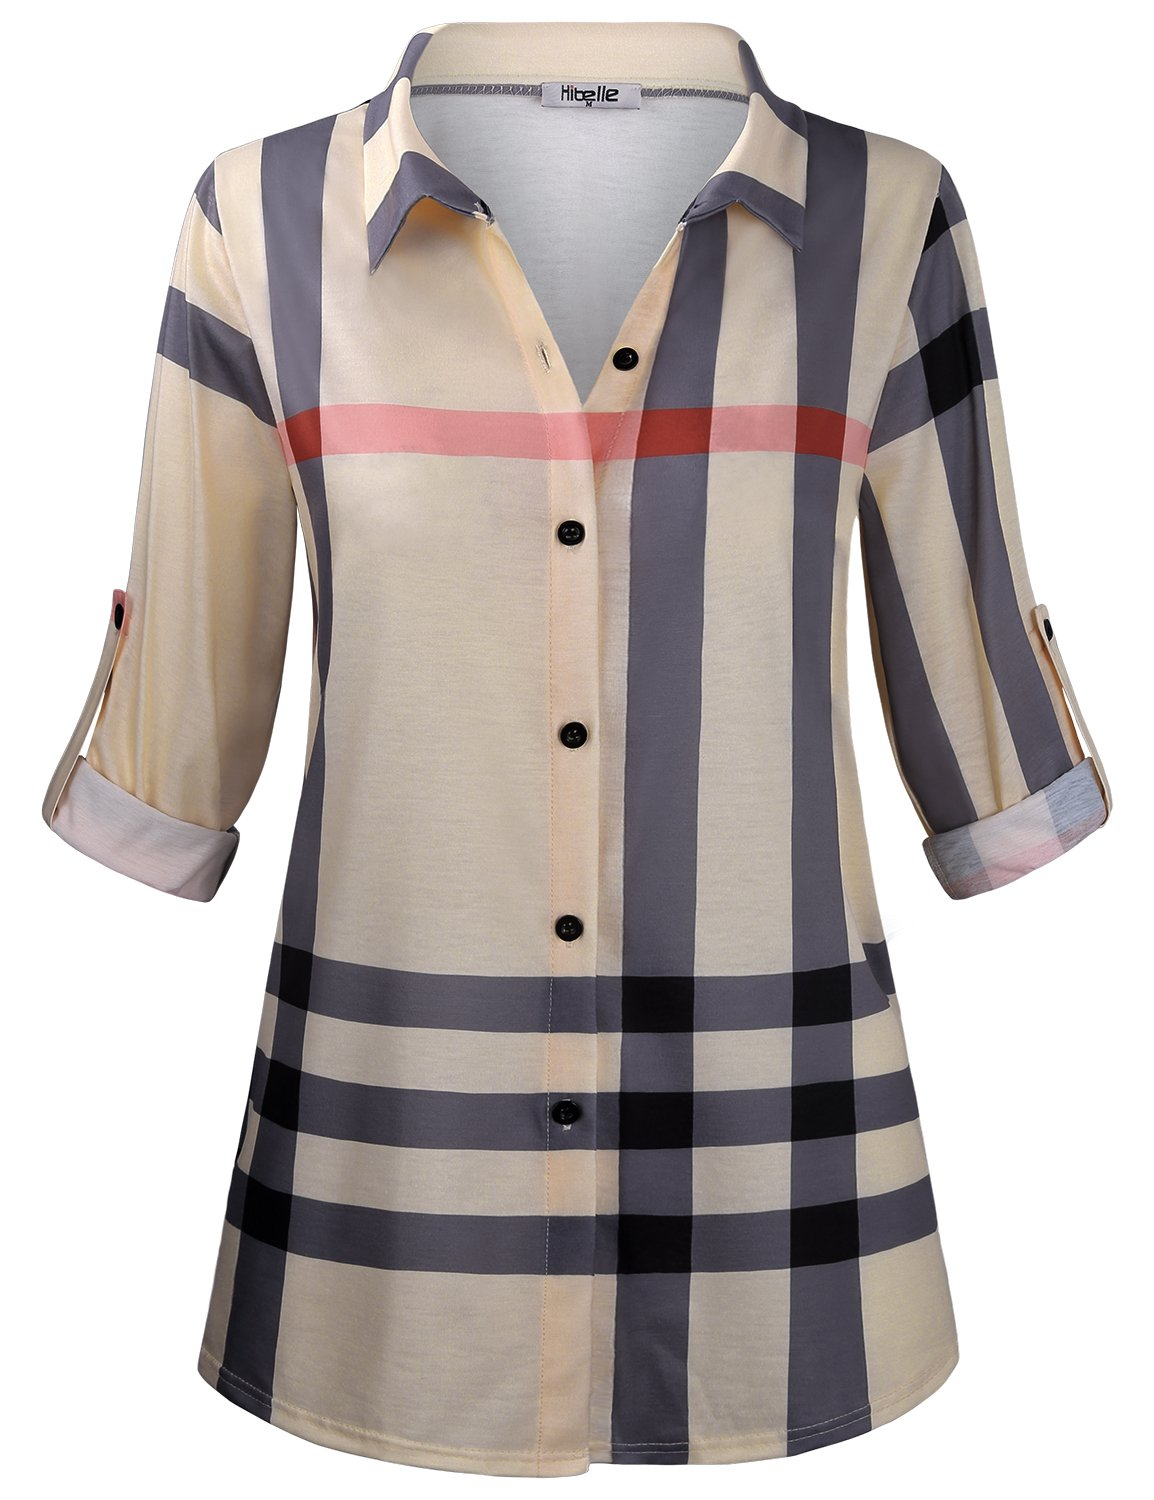 Hibelle Work Blouses for Women, Ladies Plaid Rolled Up Sleeve V Neck Buttoned Down Front Checked Shirt Flowing Shirttail Hem Basic Nice Striped Office Career Tunic Top Beige XL